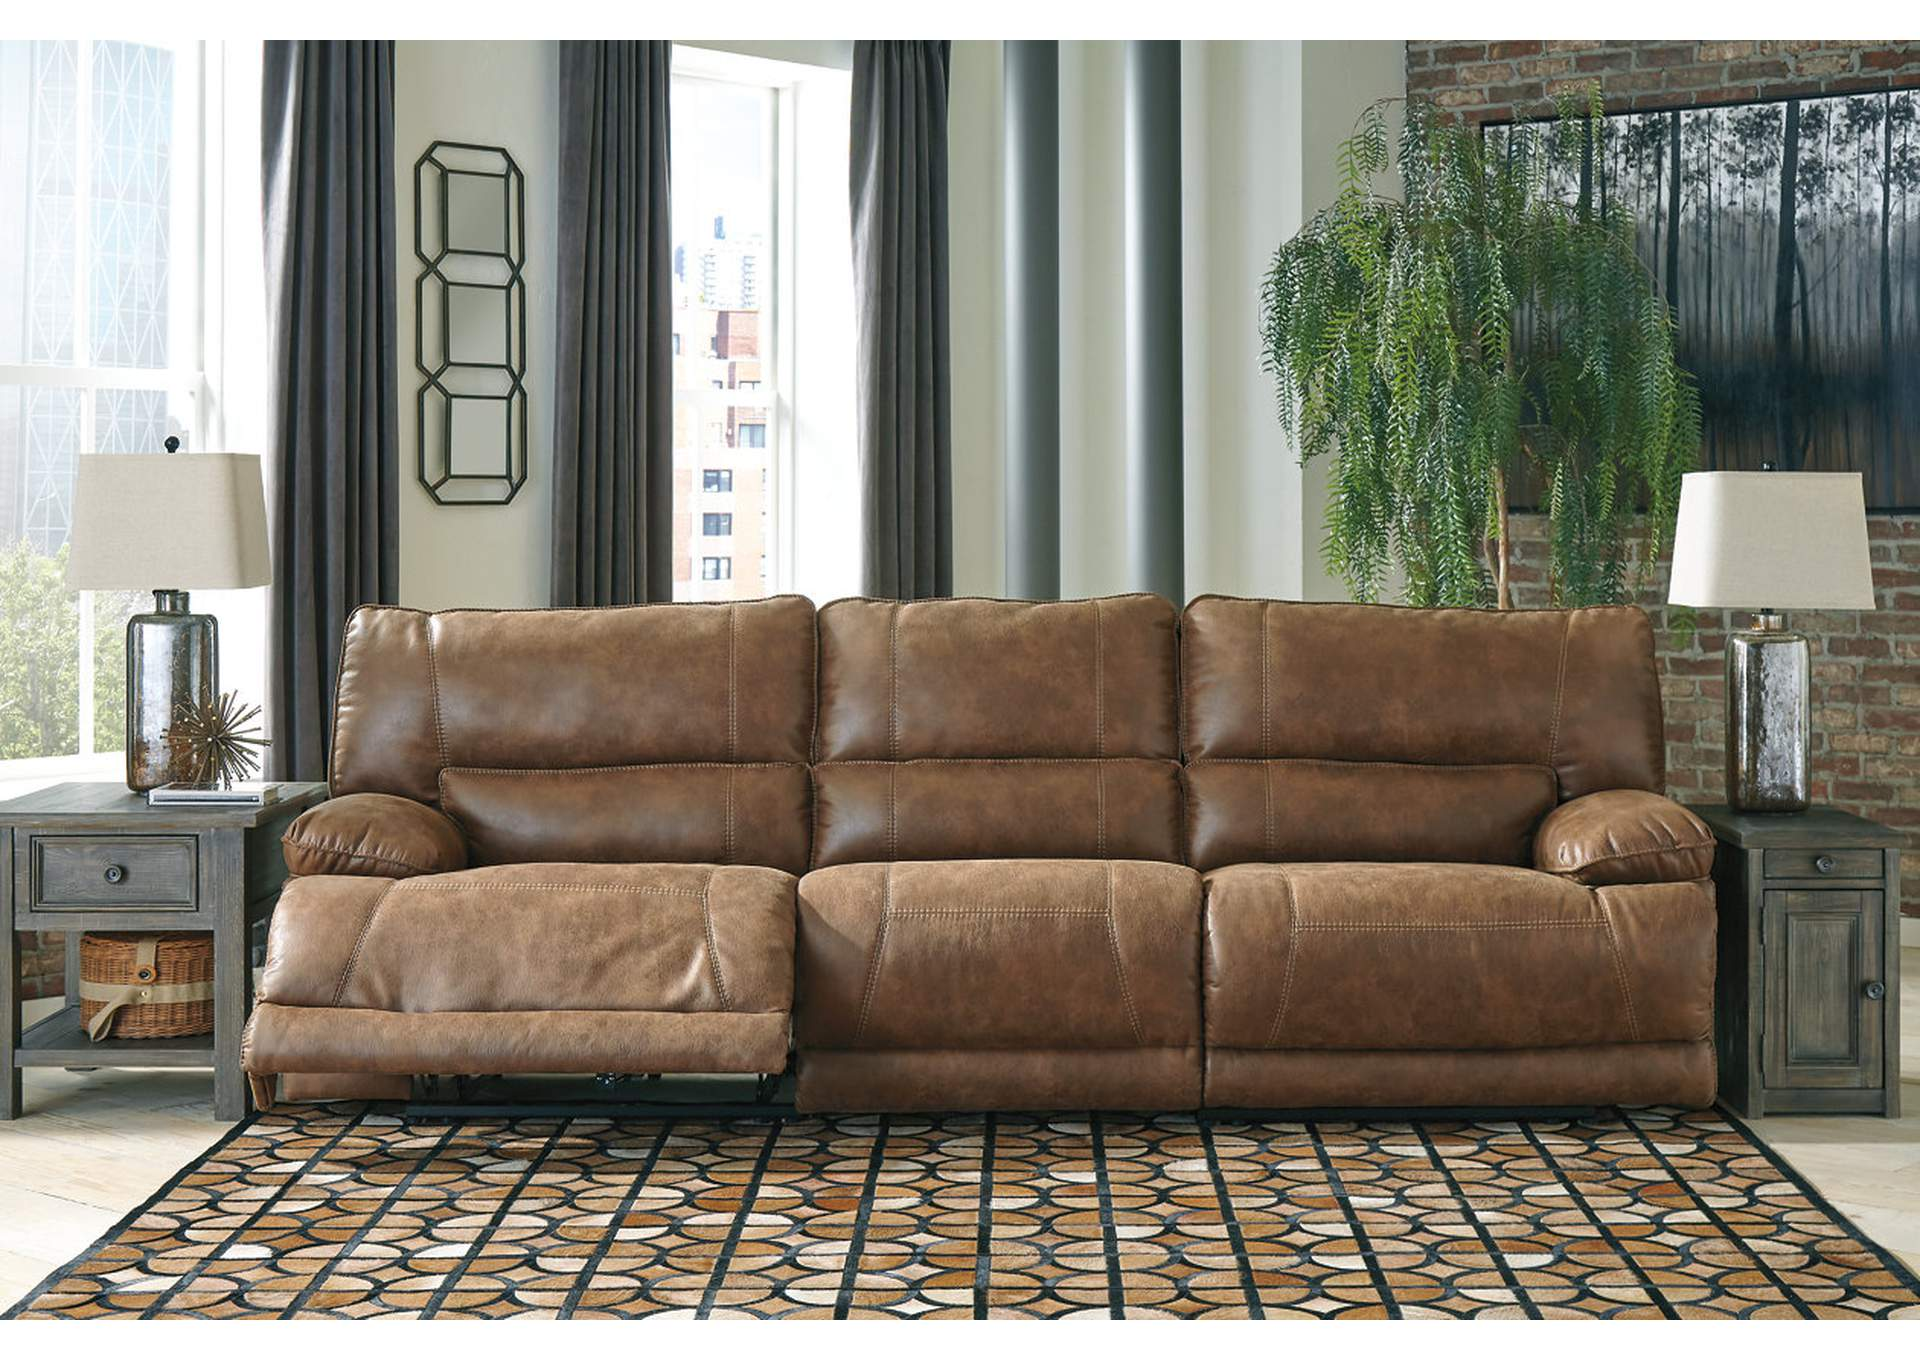 Thurles Saddle Reclining Sofa,Signature Design By Ashley